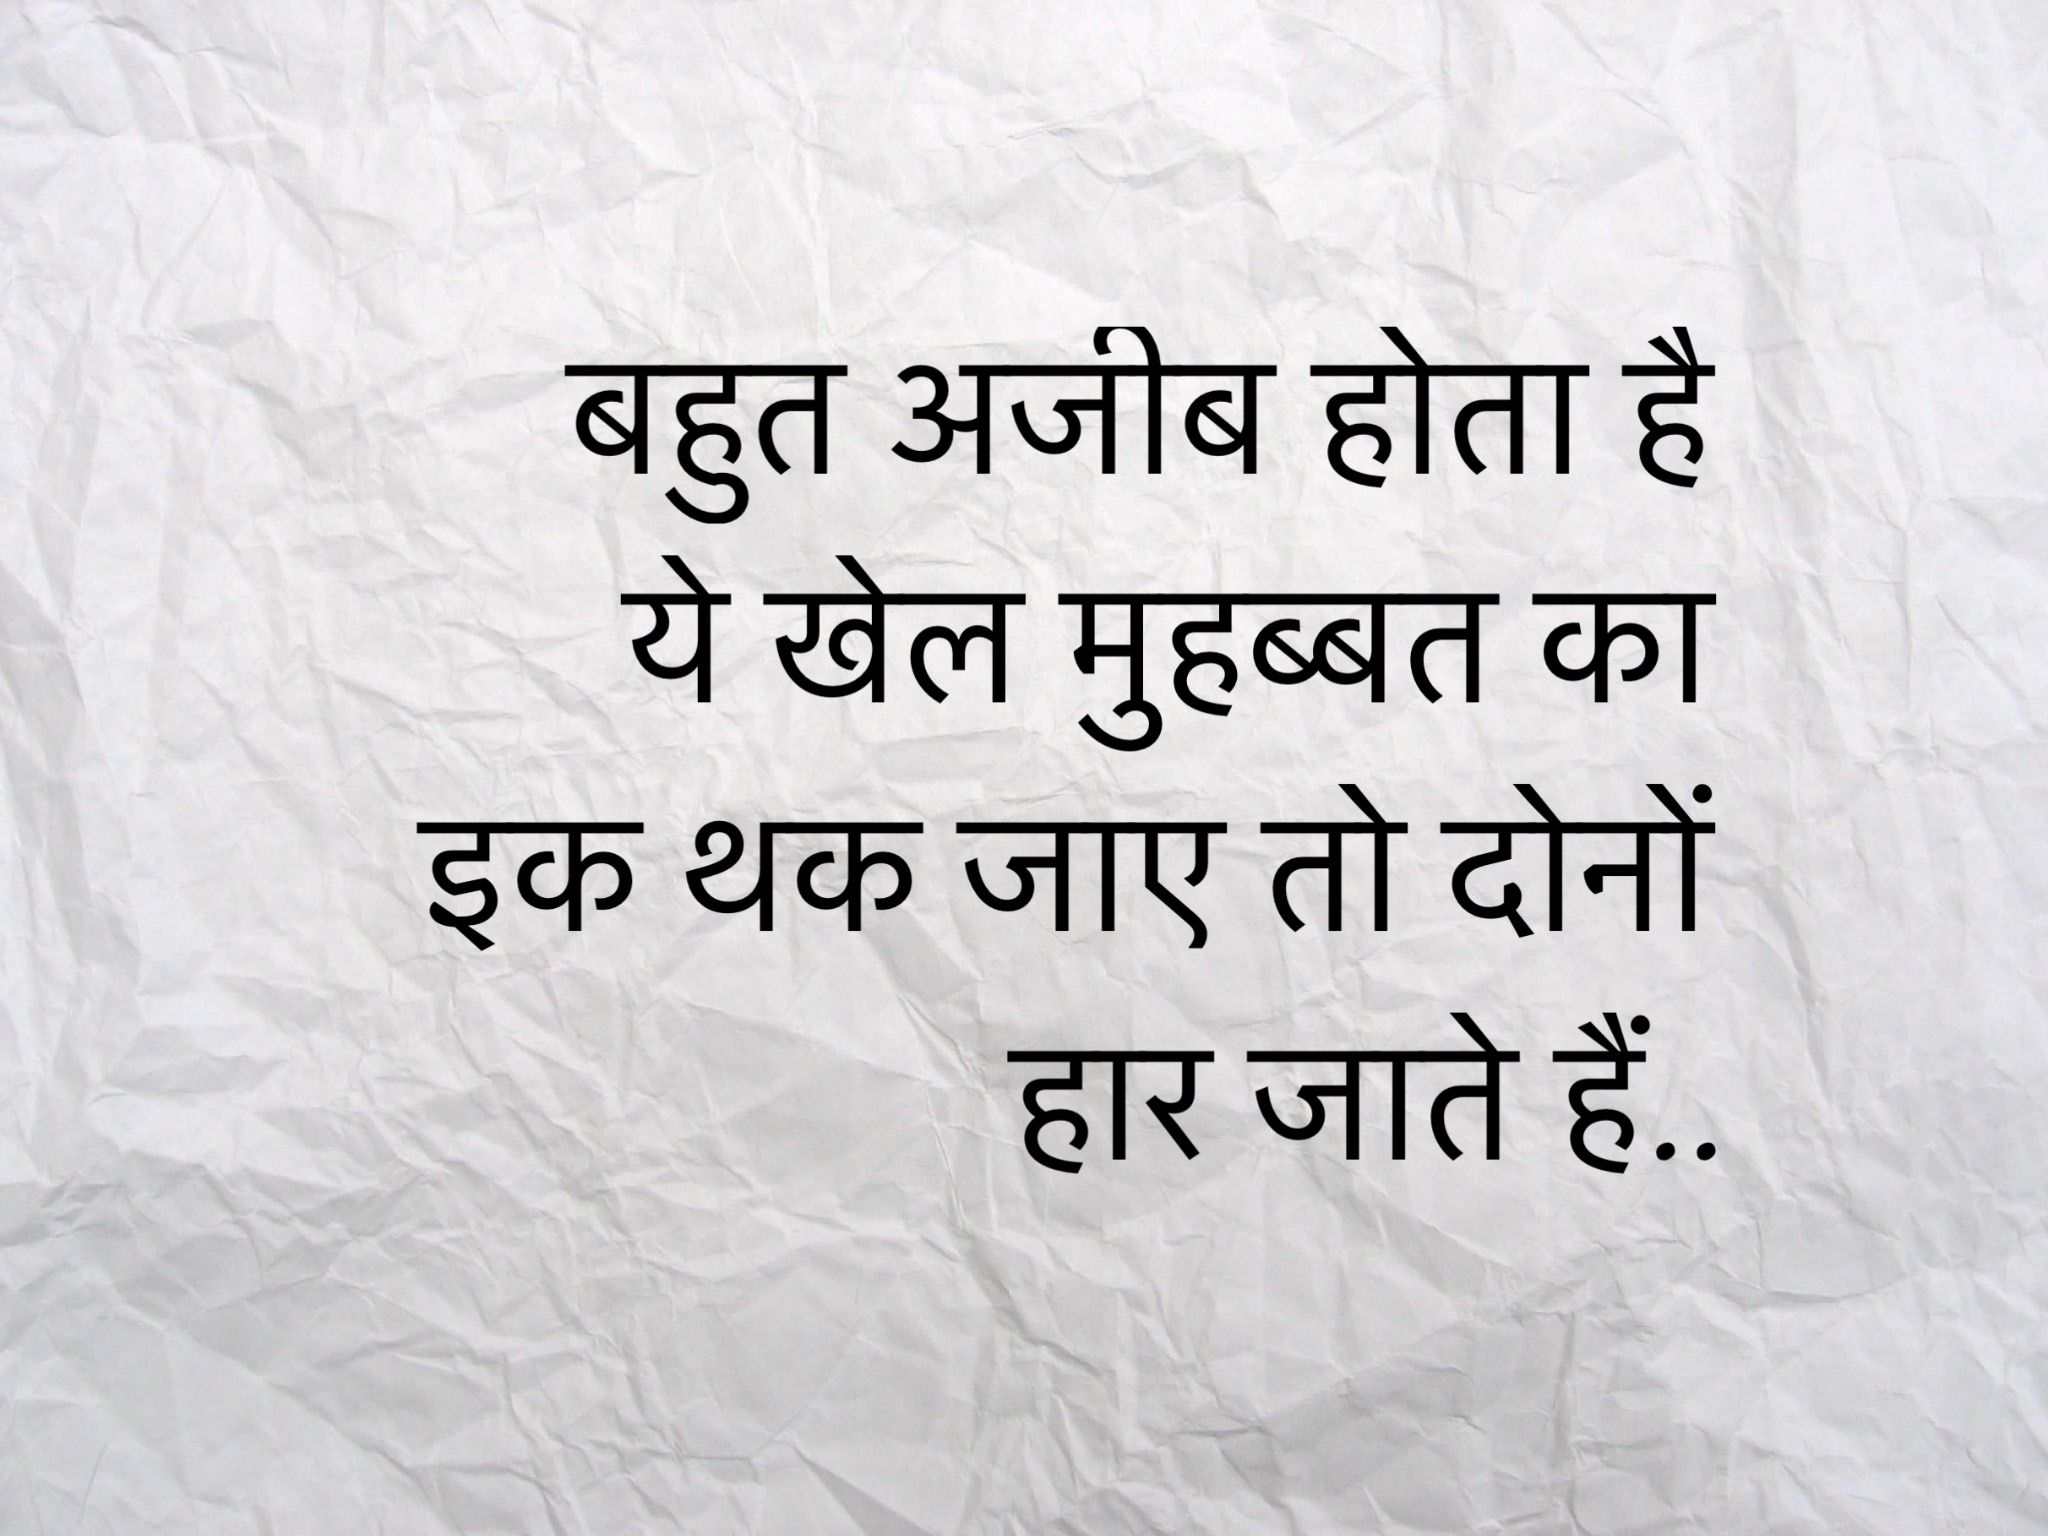 Hindi Quotes Short Quotes Bread Poem Feelings Breads Brot Poems Poetry